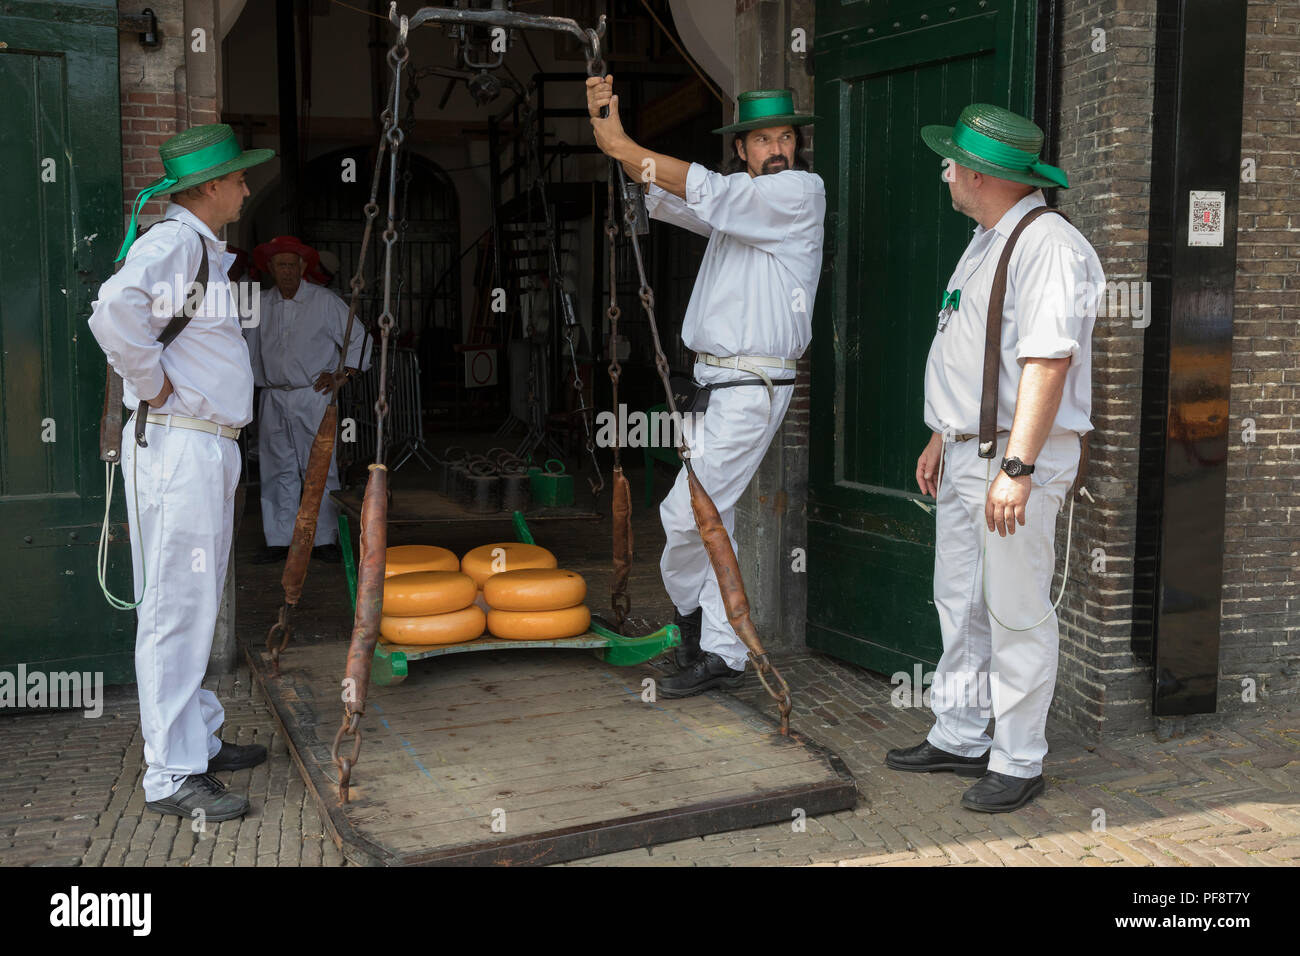 Alkmaar, Netherlands - July 20, 2018: Cheese carriers waiting for the cheeses to be weighted on the scale in the Waag building before being sold on th - Stock Image